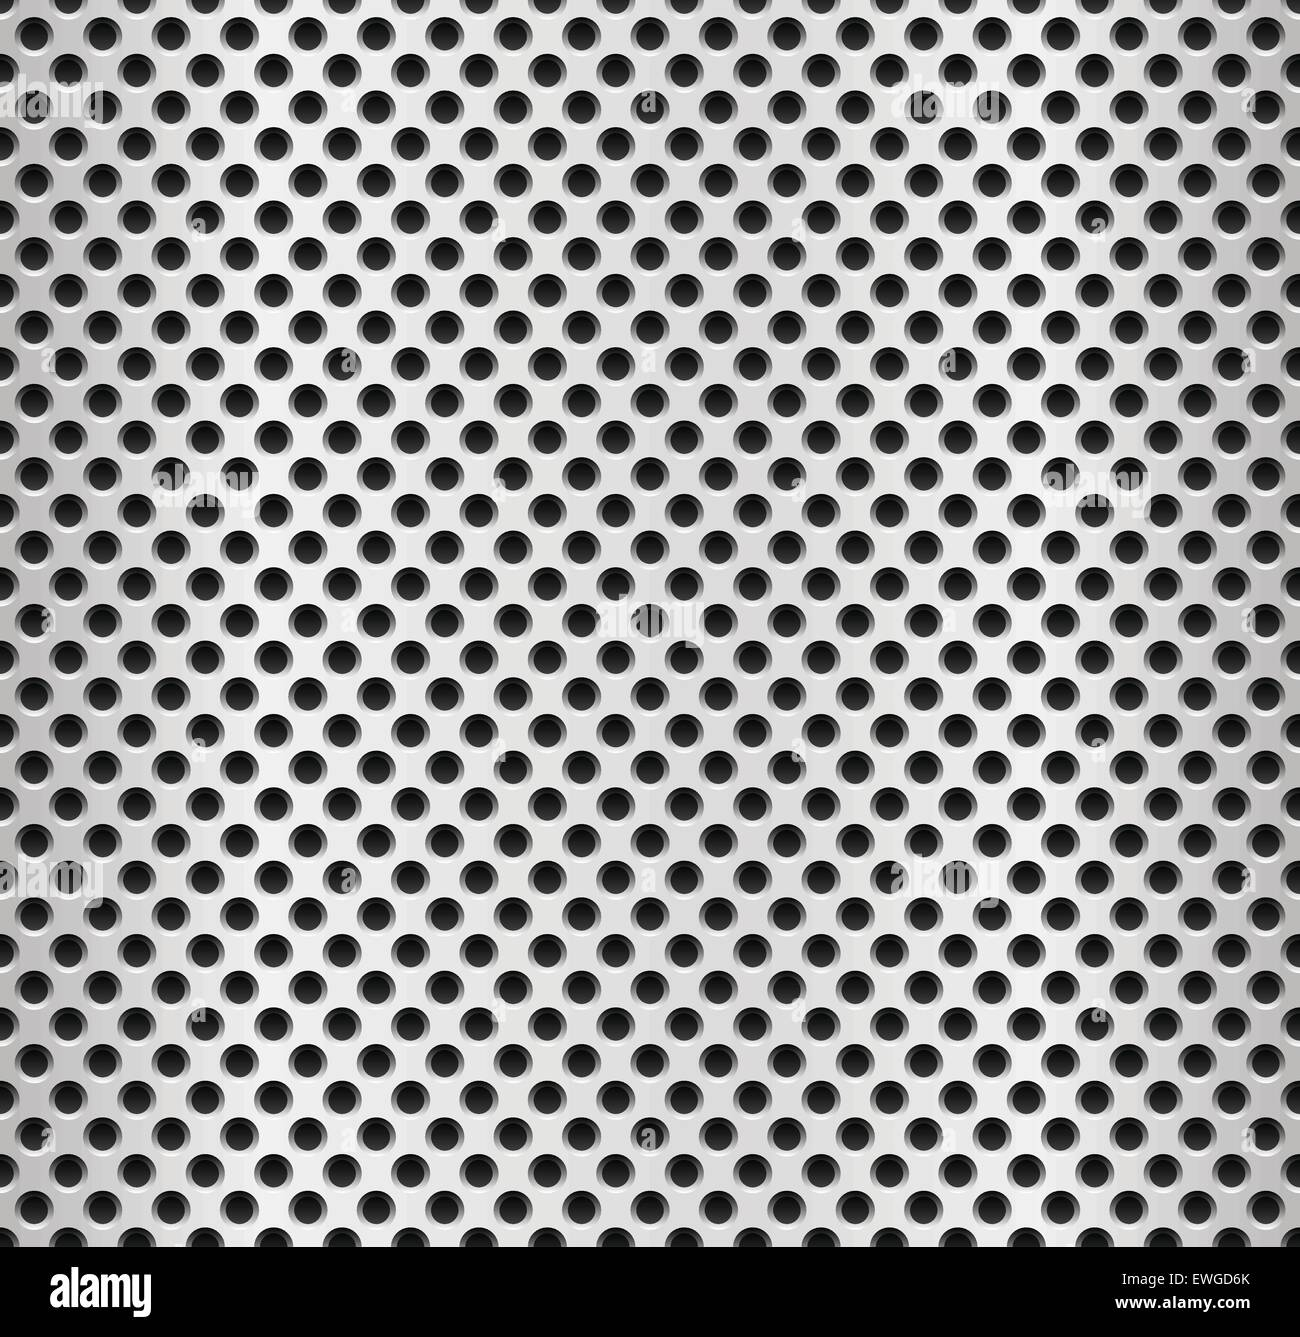 Seamless Metal Swatch Perforated Metal Pattern With Black